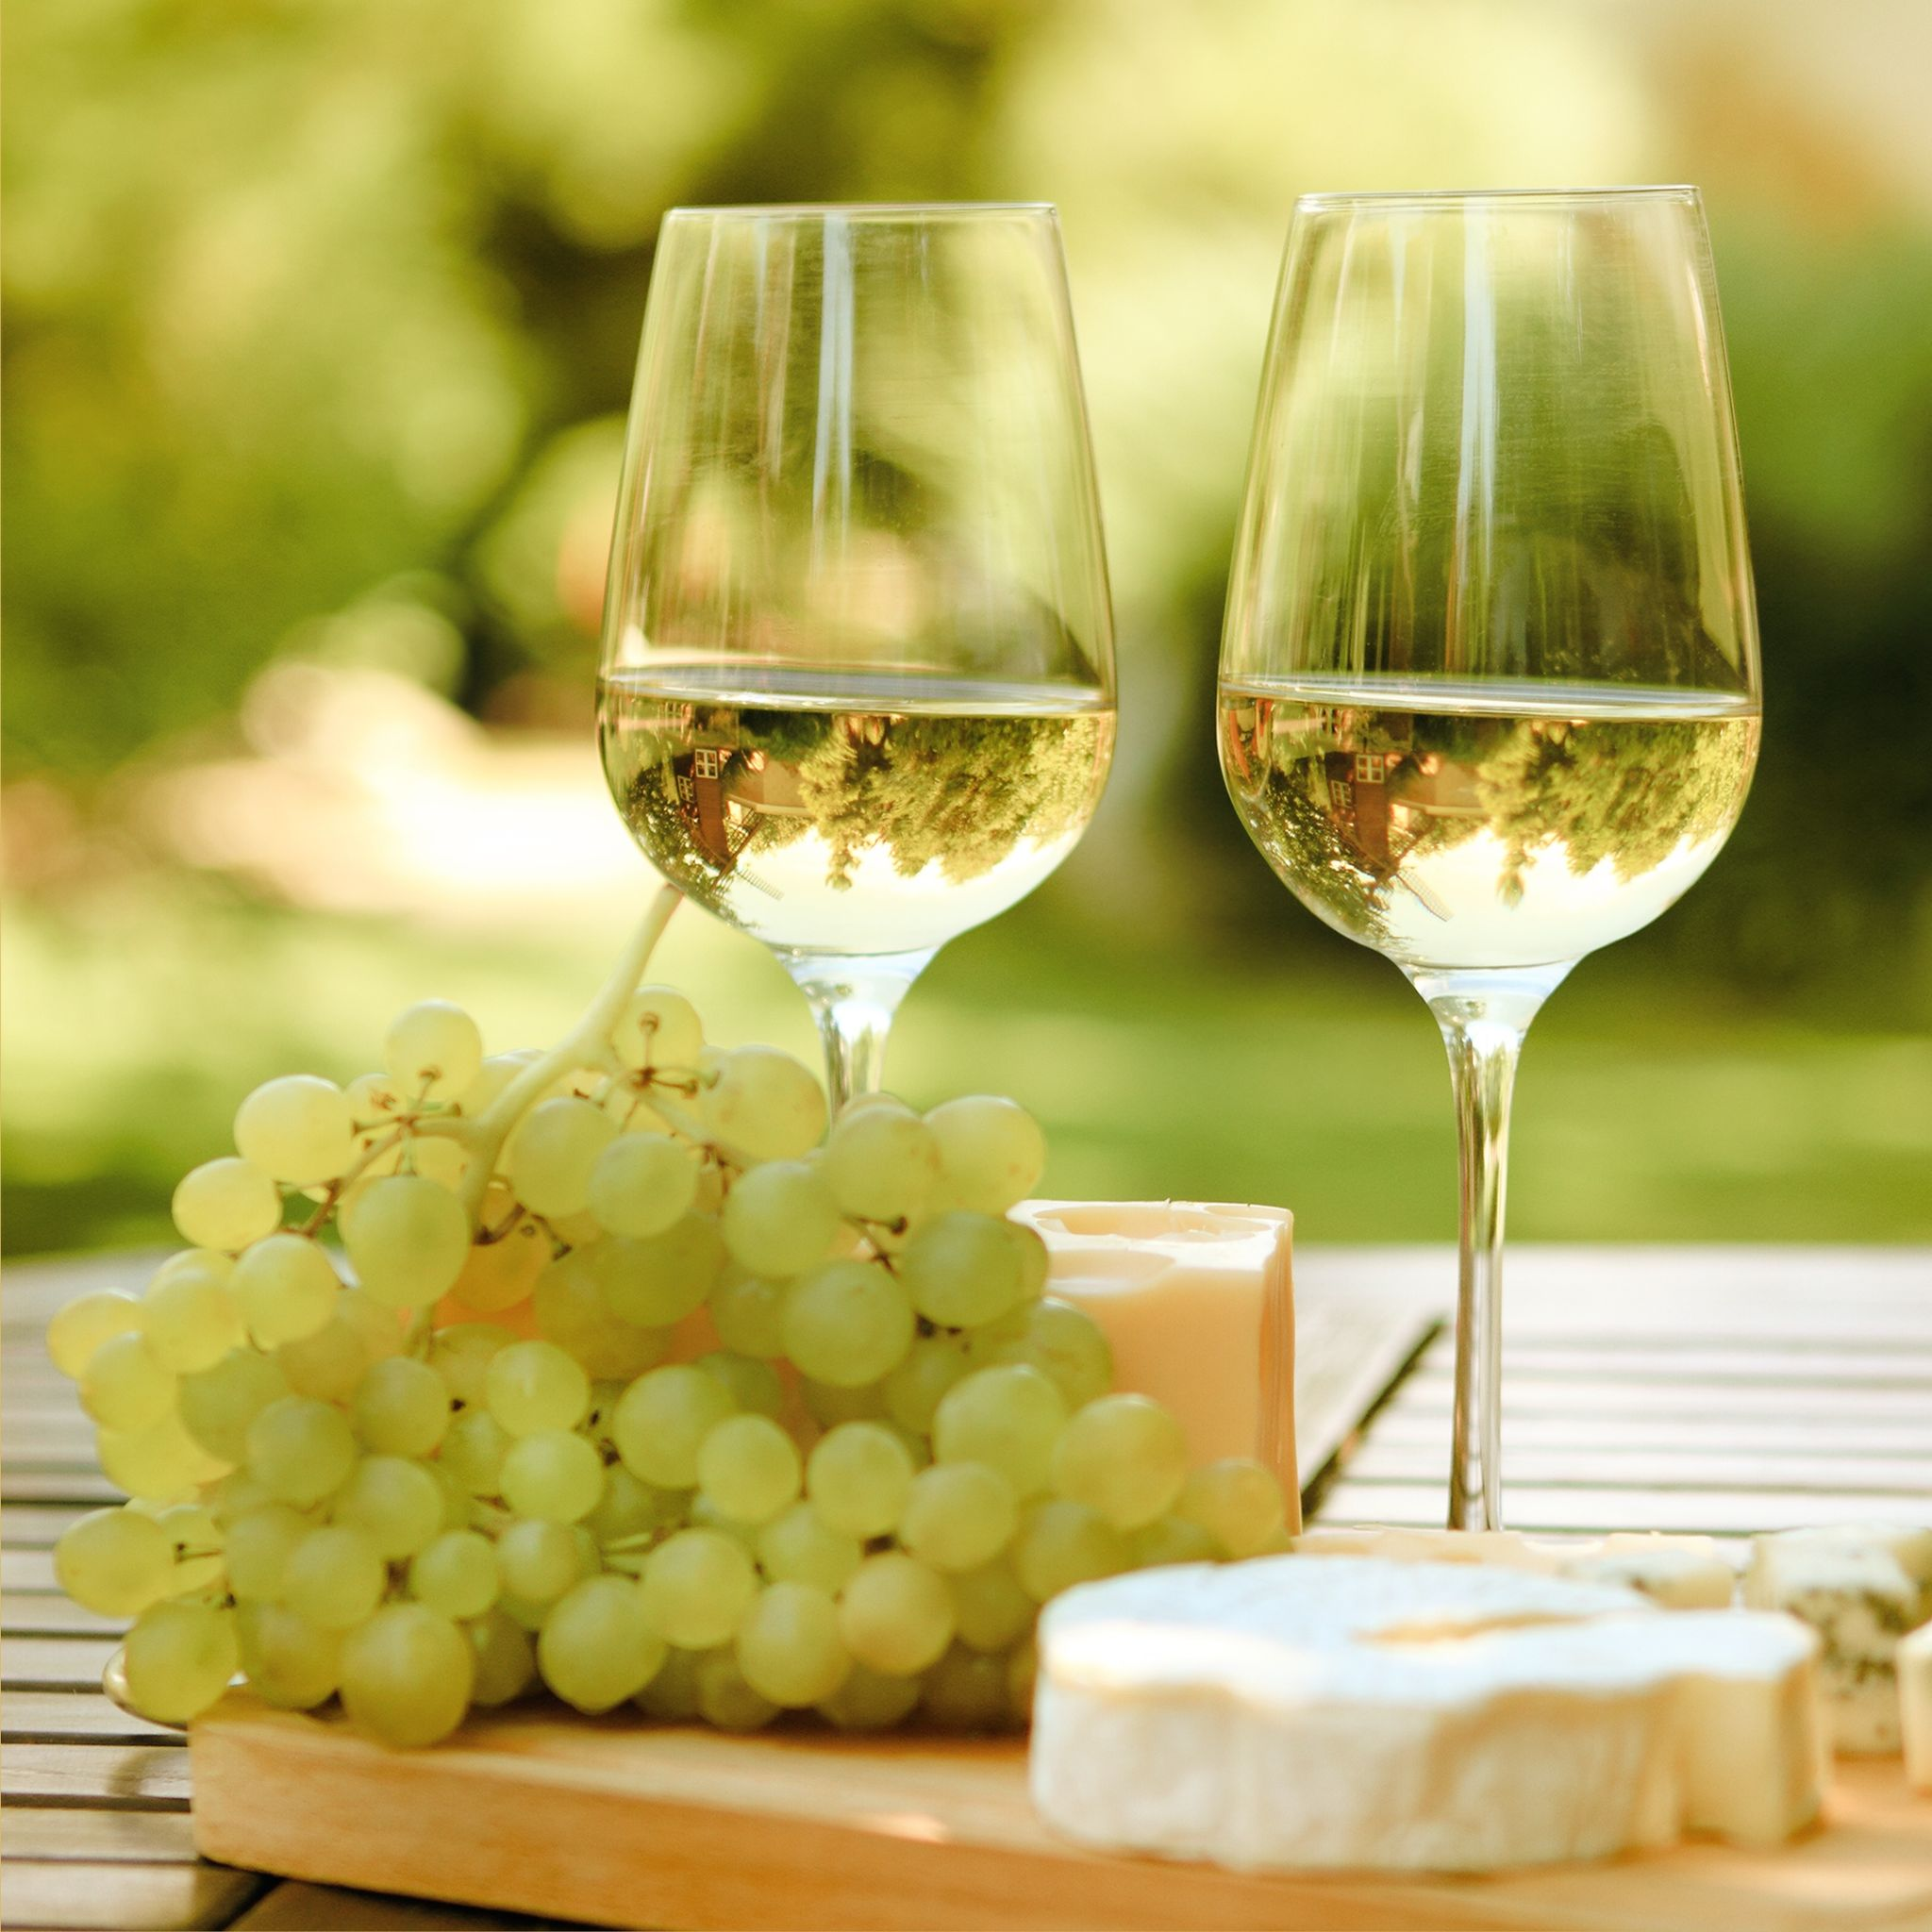 australia white wine and cheese 123rf